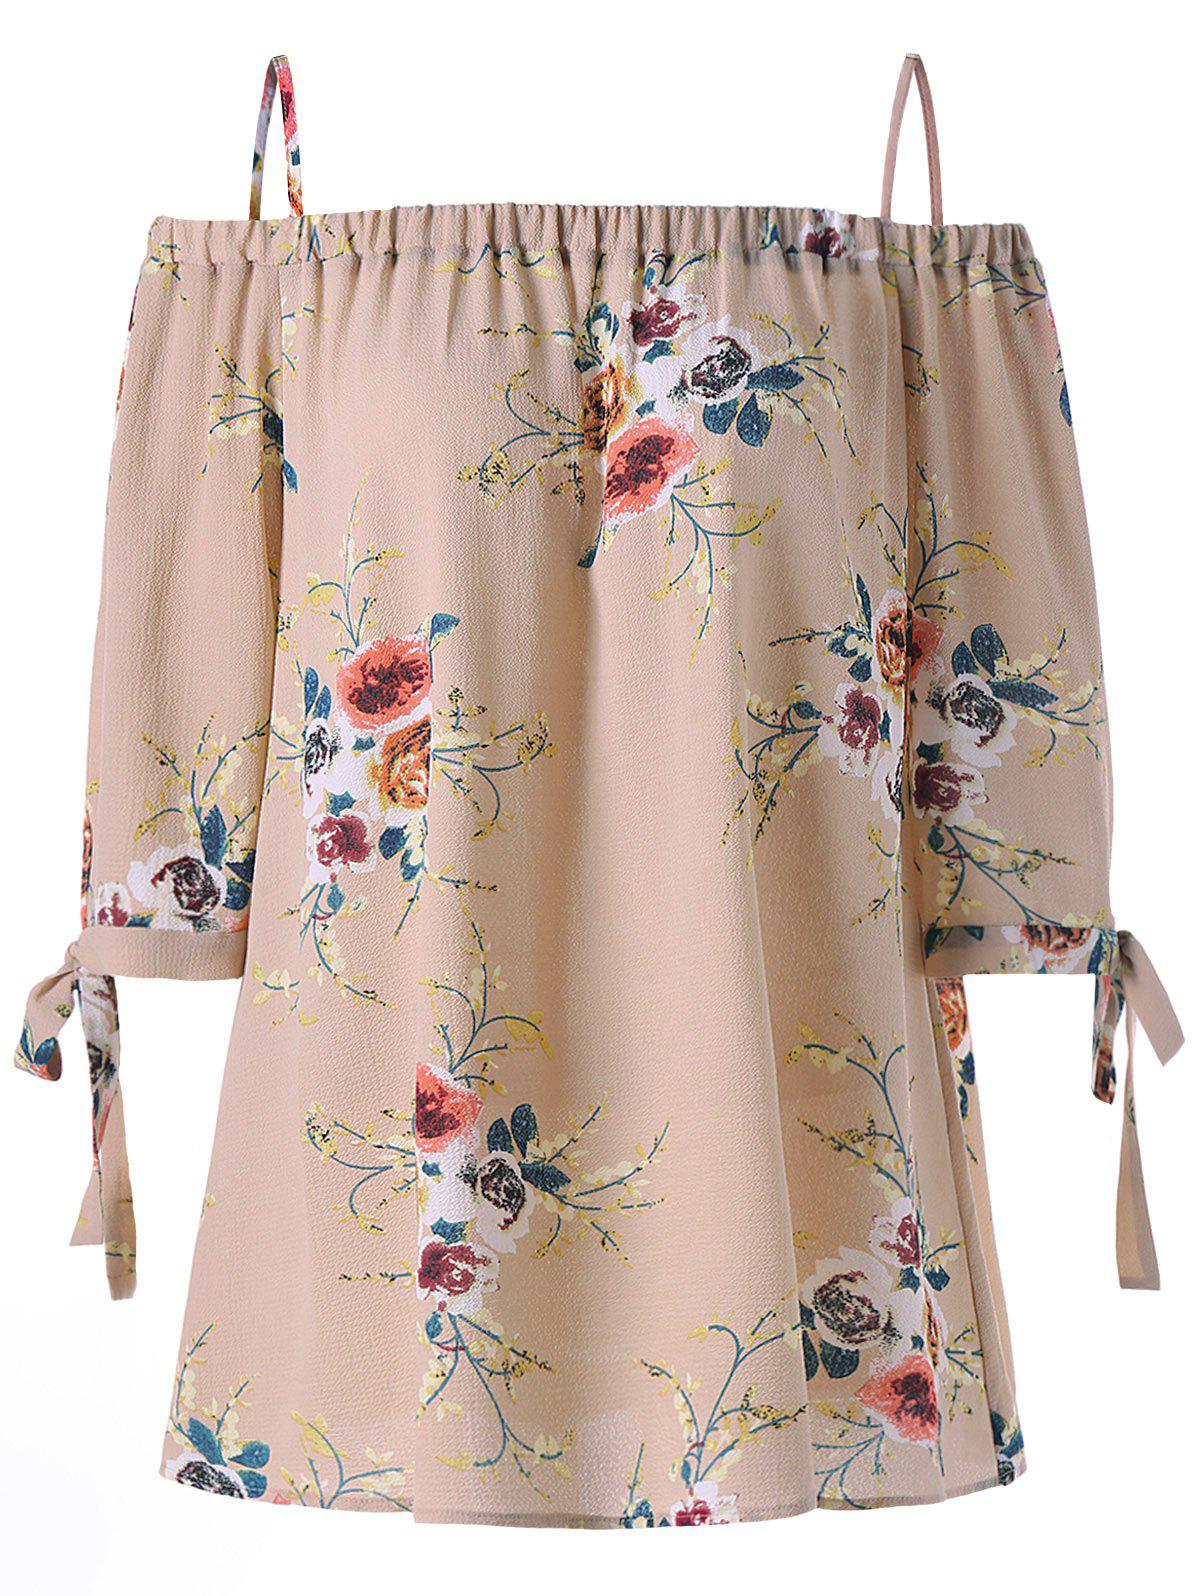 Plus Size Cold Shoulder Bohemian BlouseWOMEN<br><br>Size: XL; Color: APRICOT; Material: Polyester; Shirt Length: Regular; Sleeve Length: Three Quarter; Collar: Spaghetti Strap; Style: Fashion; Season: Fall,Spring,Summer; Pattern Type: Floral; Placement Print: No; Weight: 0.2100kg; Package Contents: 1 x Blouse;